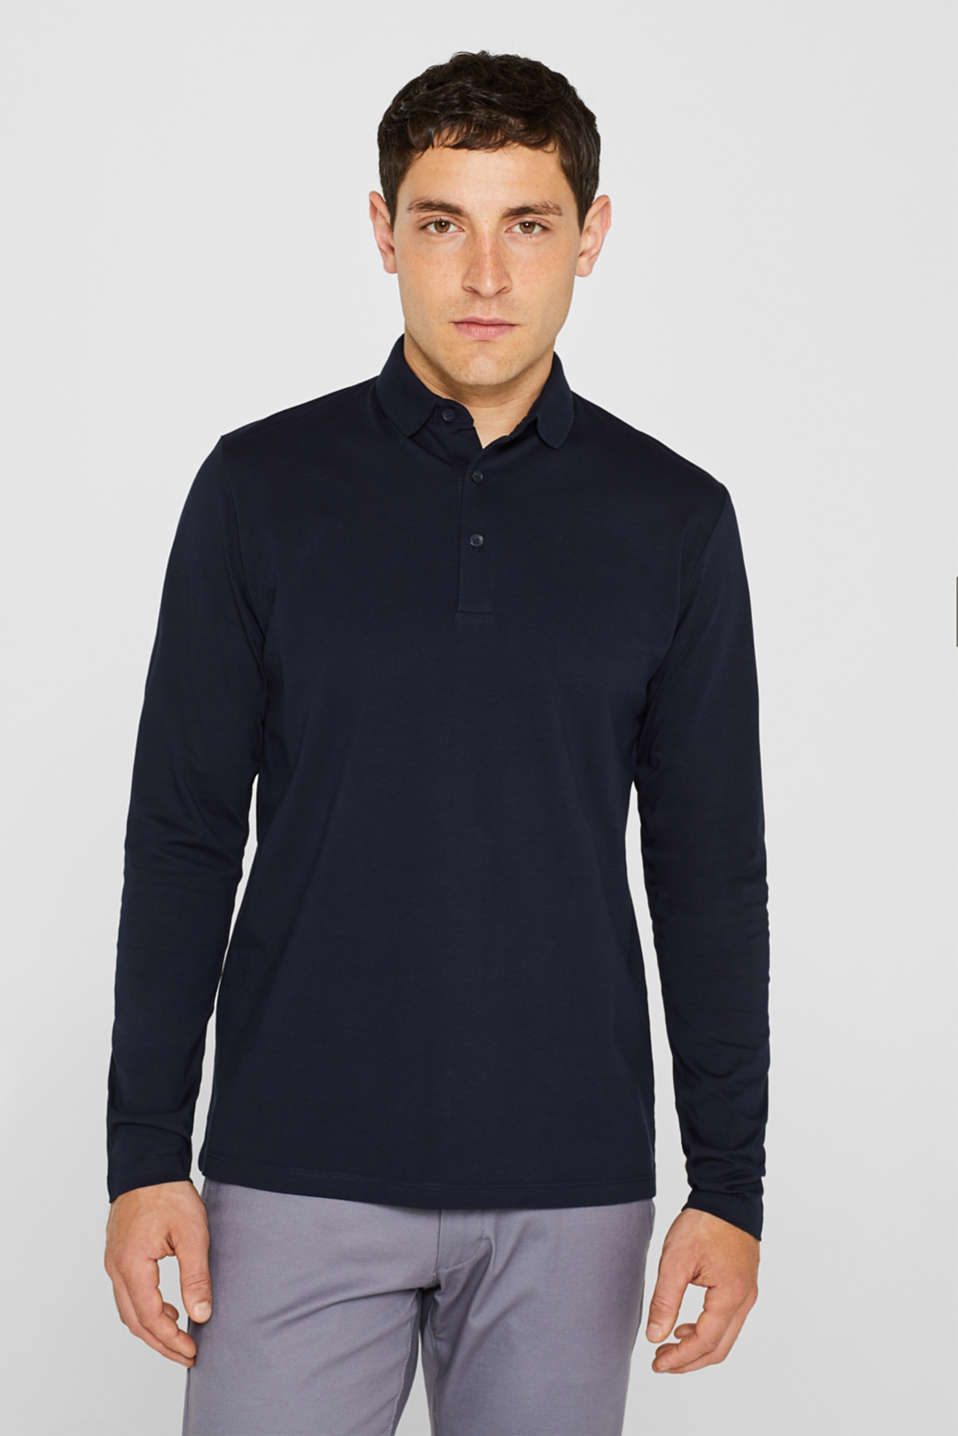 Esprit - Jersey polo shirt in 100% cotton